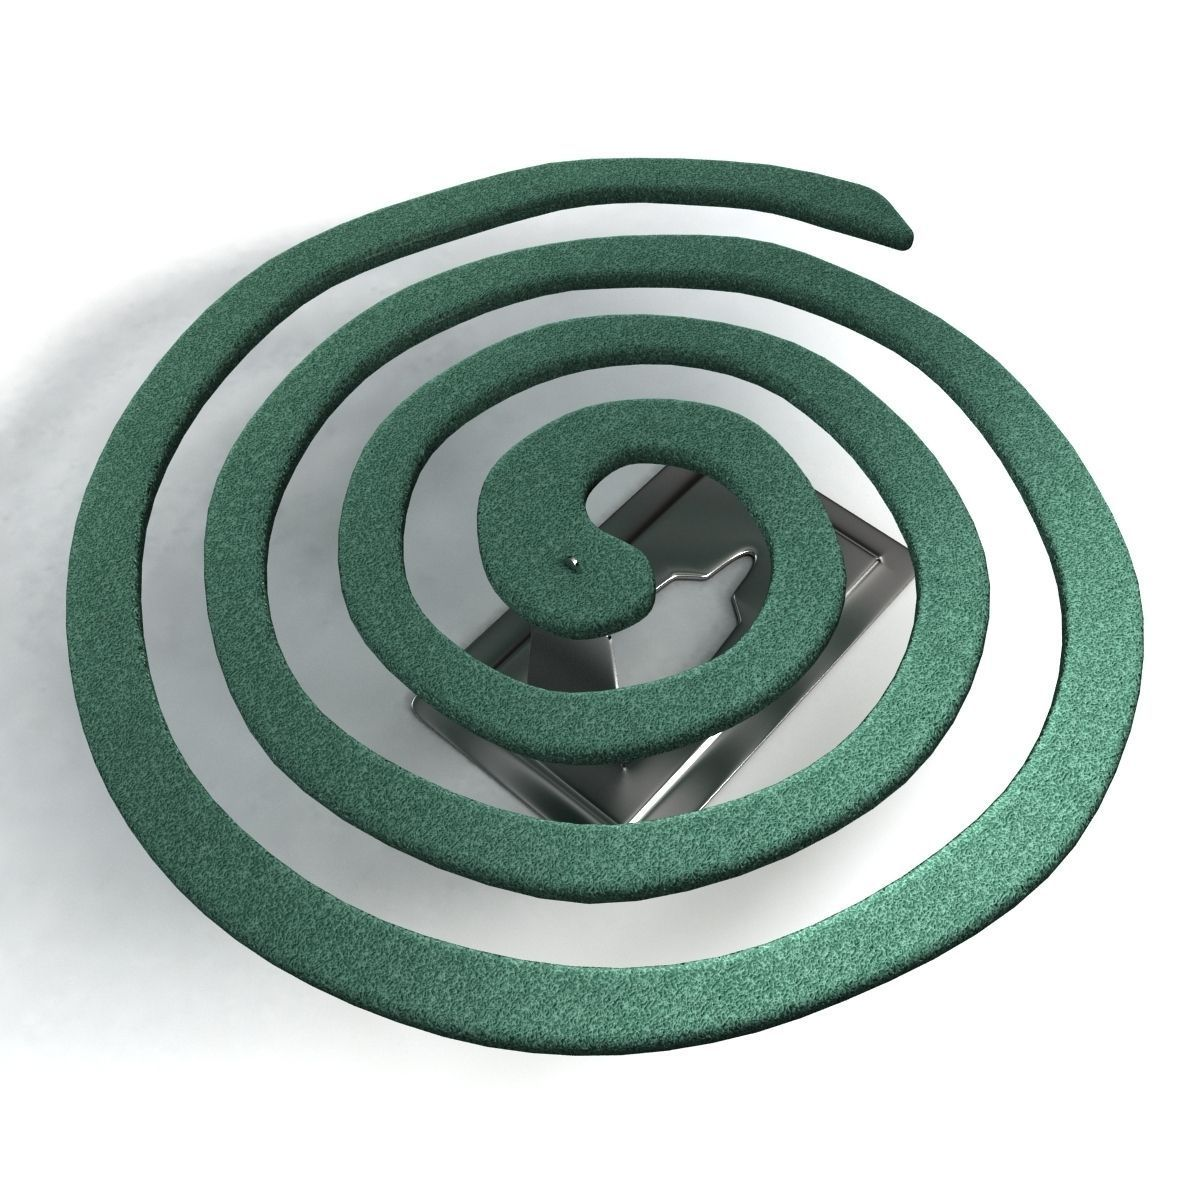 mosquito coil Guangzhou topone chemicals co, ltd, experts in manufacturing and exporting mosquito coil, insecticide and 968 more products a verified cn gold supplier on.